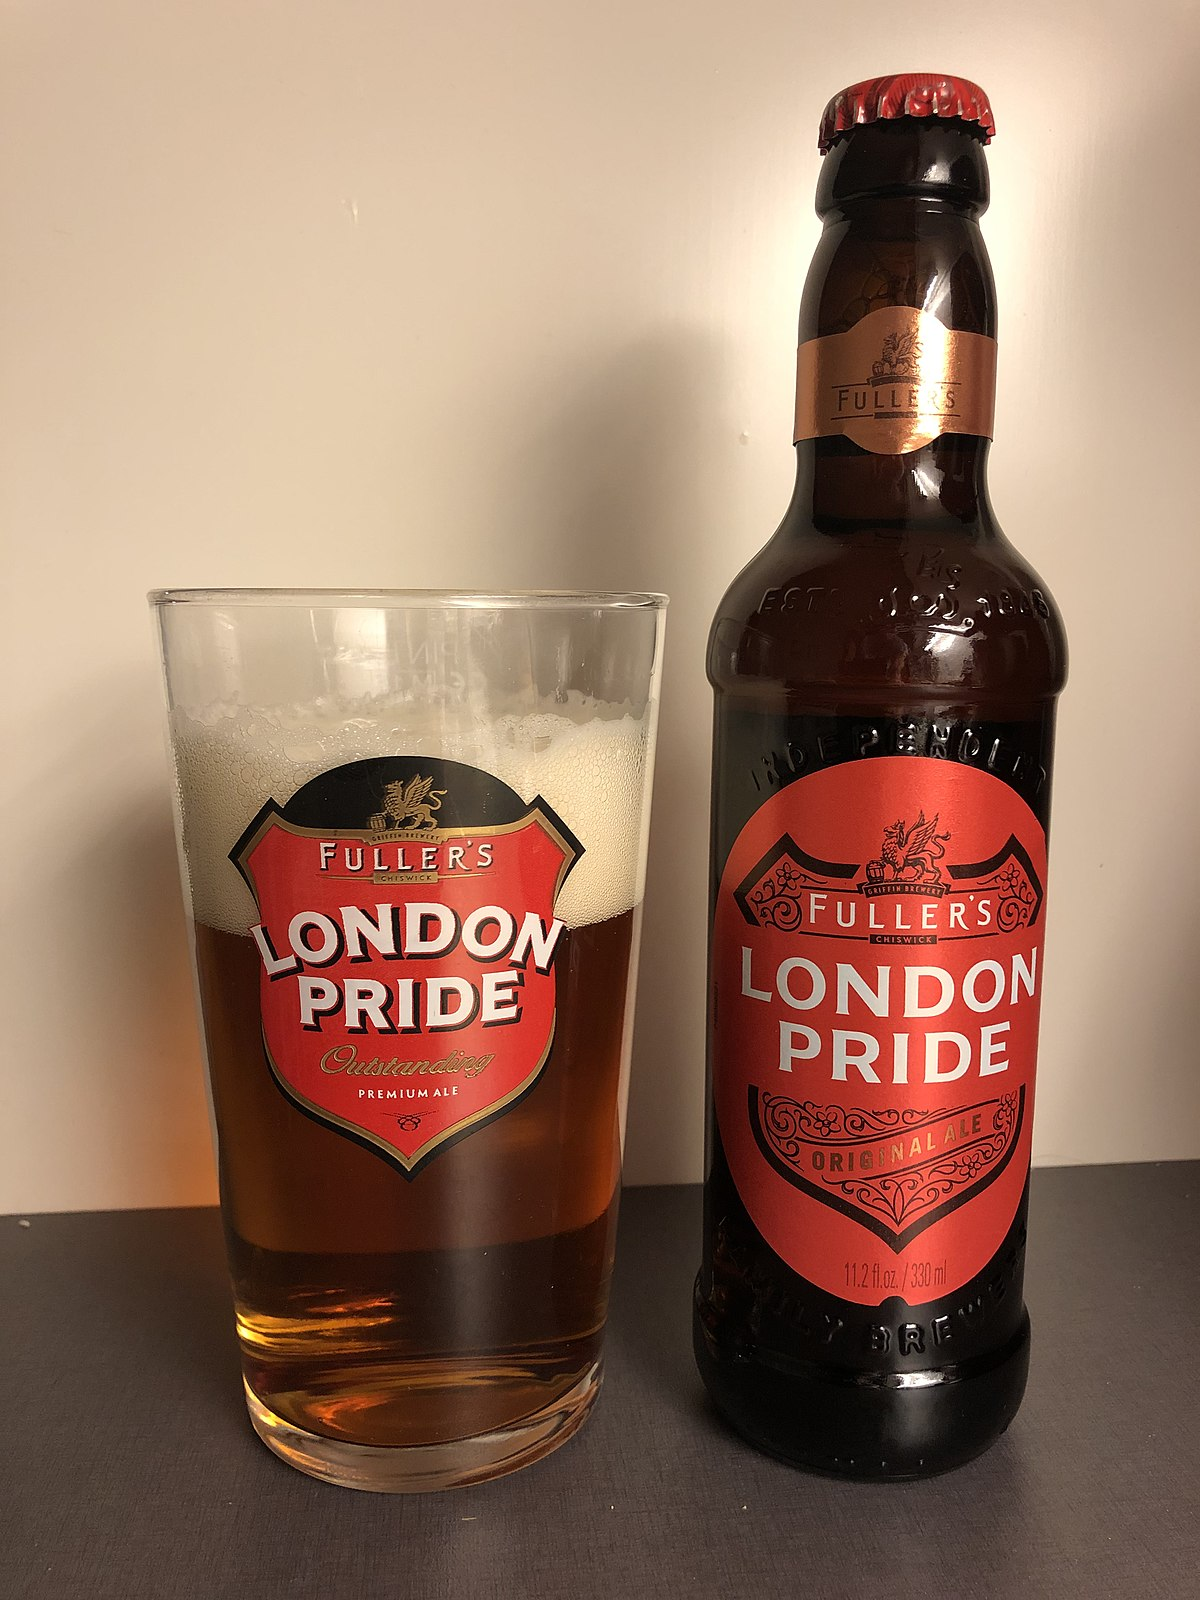 1200px-London_Pride_bottle_and_glass.jpg